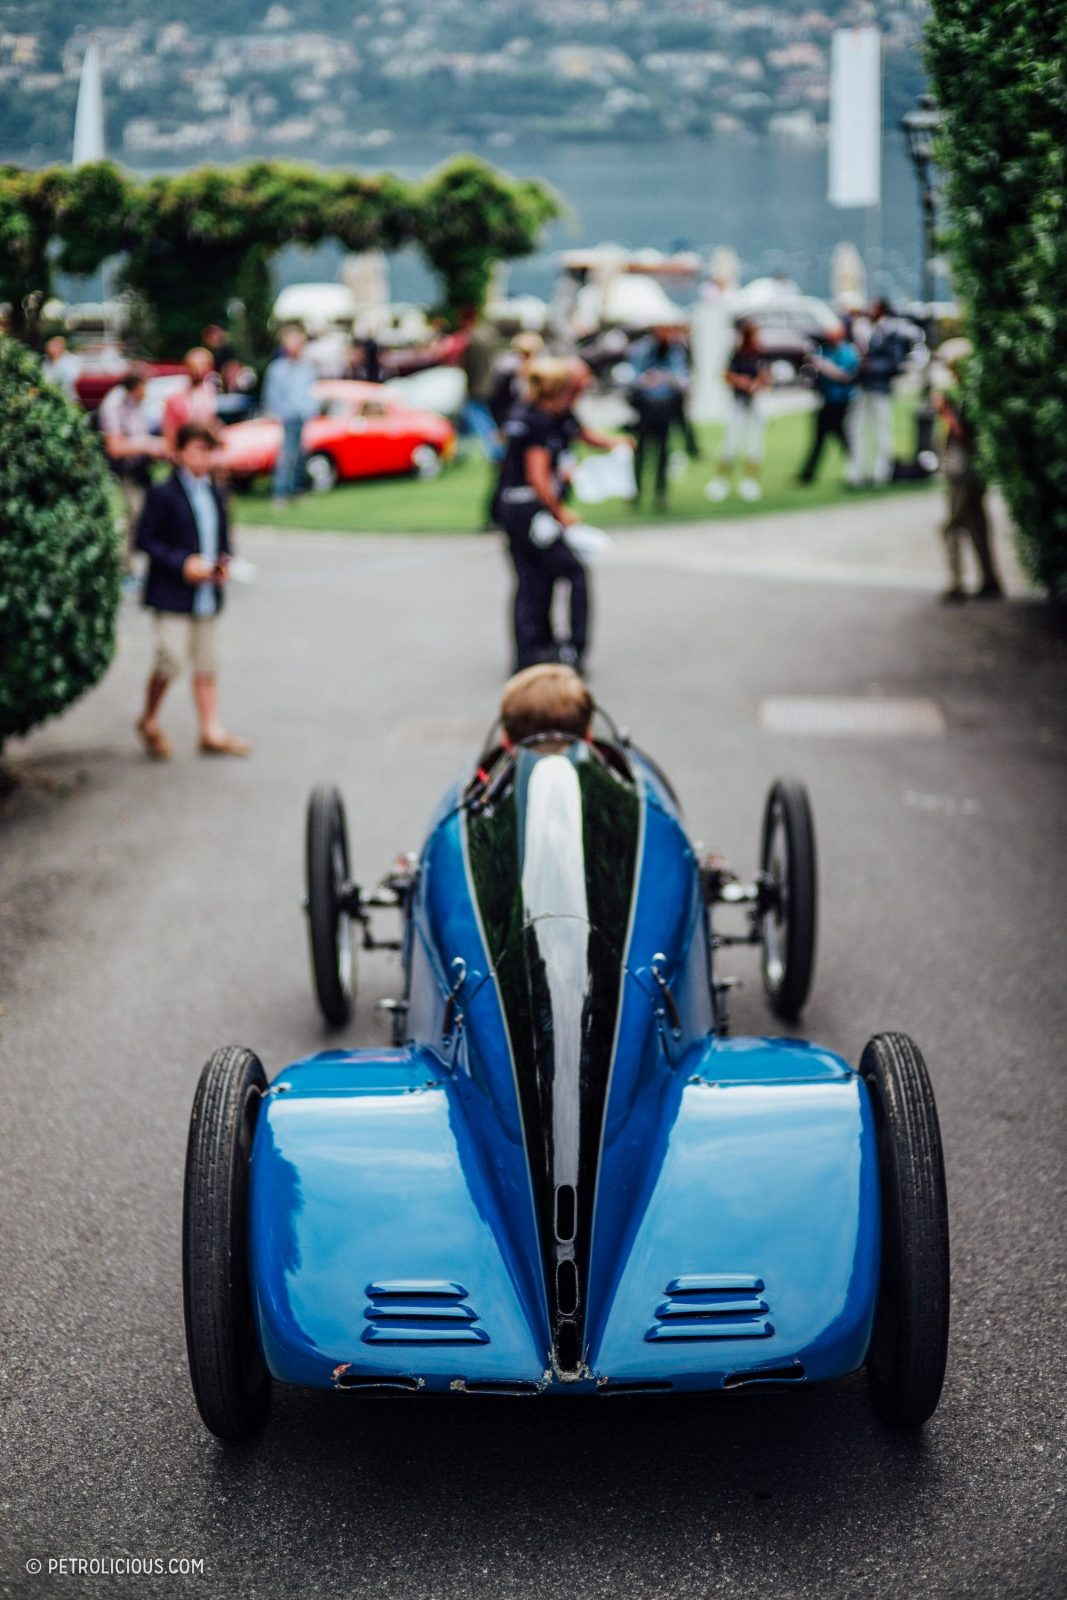 Villa d'este Este petrolicious photos